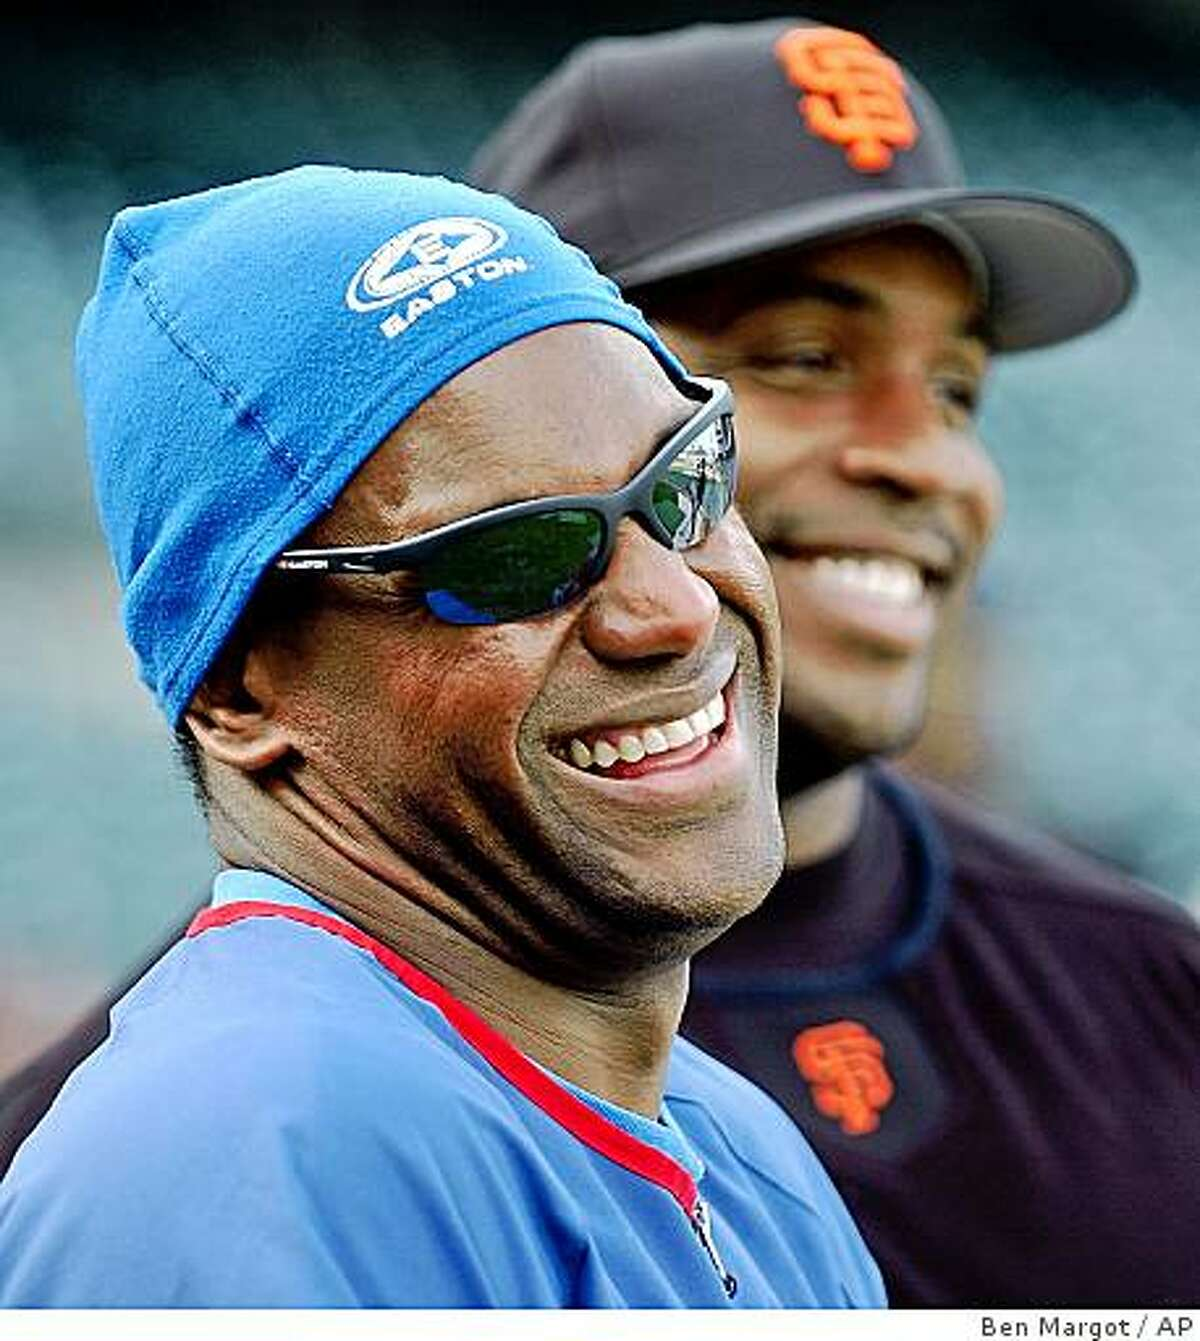 FILE - In this April 29, 2003 file photo, Chicago Cubs' Sammy Sosa, left, and San Francisco Giants' Barry Bonds smile during batting practice prior to a baseball game in San Francisco. The New York Times reported on its website Tuesday, June 16, 2009, that Sosa tested positive for a performance-enhancing drug in 2003, citing lawyers familiar with the case. The newspaper did not identify the drug. (AP Photo/Ben Margot, File)